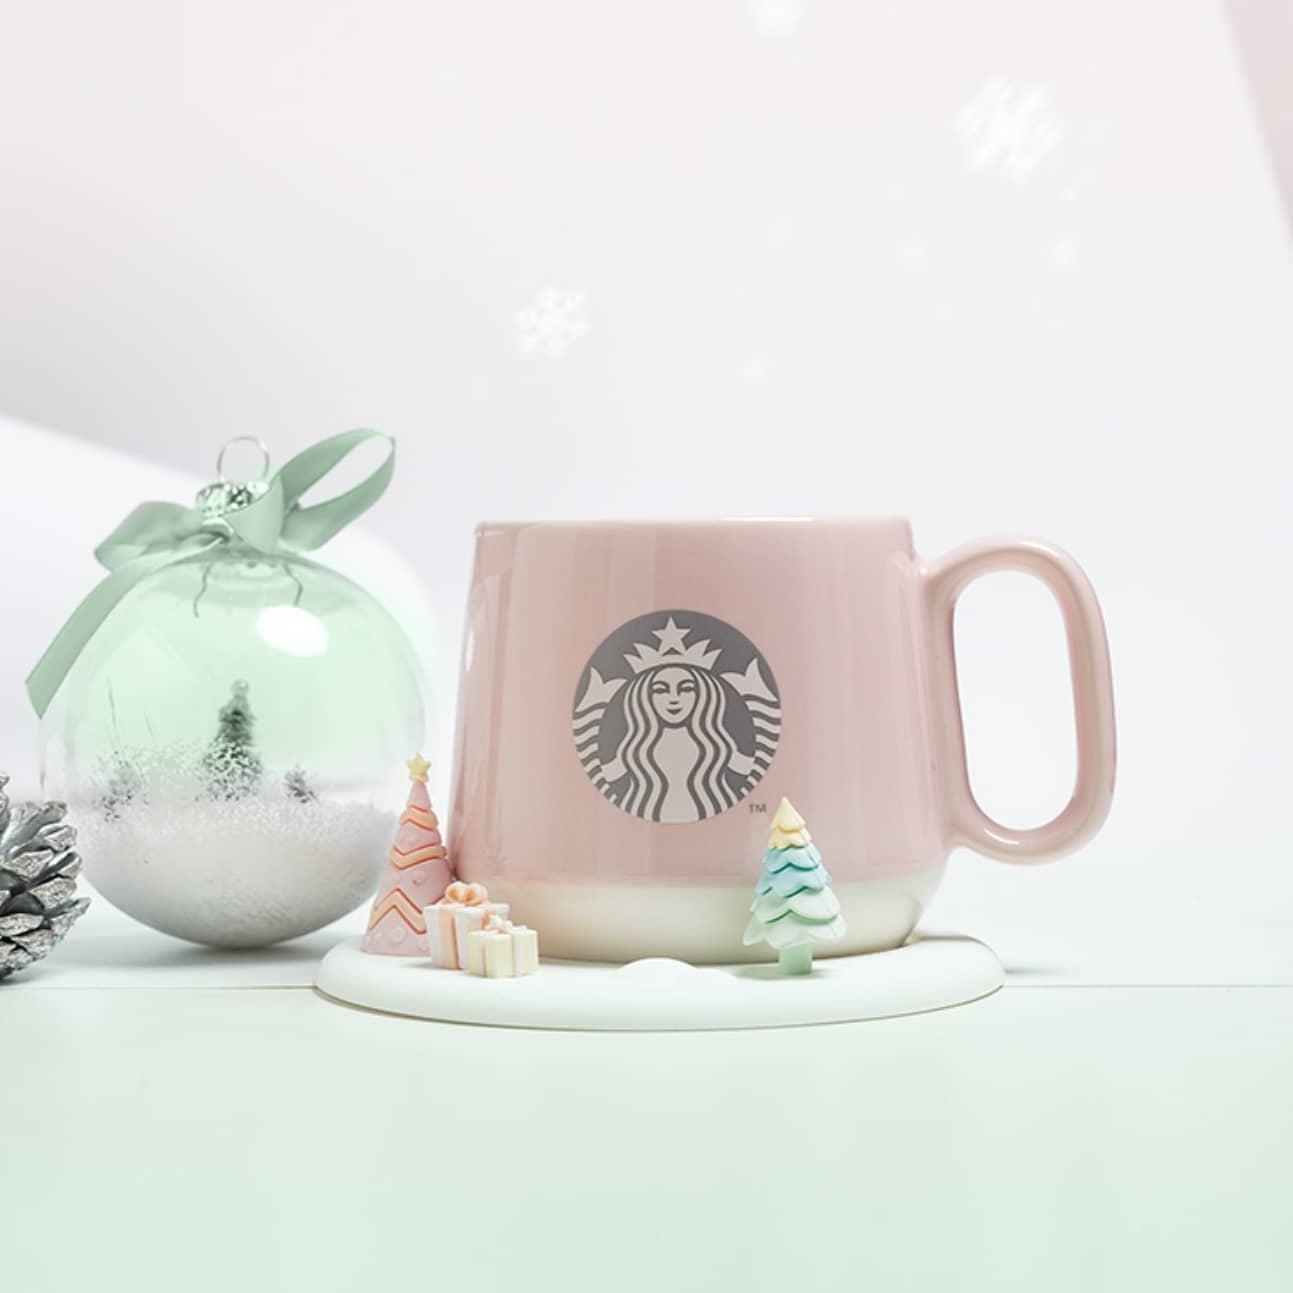 Starbucks Has A Pastel Mug Tumbler Flasks To Match Your Everyday Neutral Tones